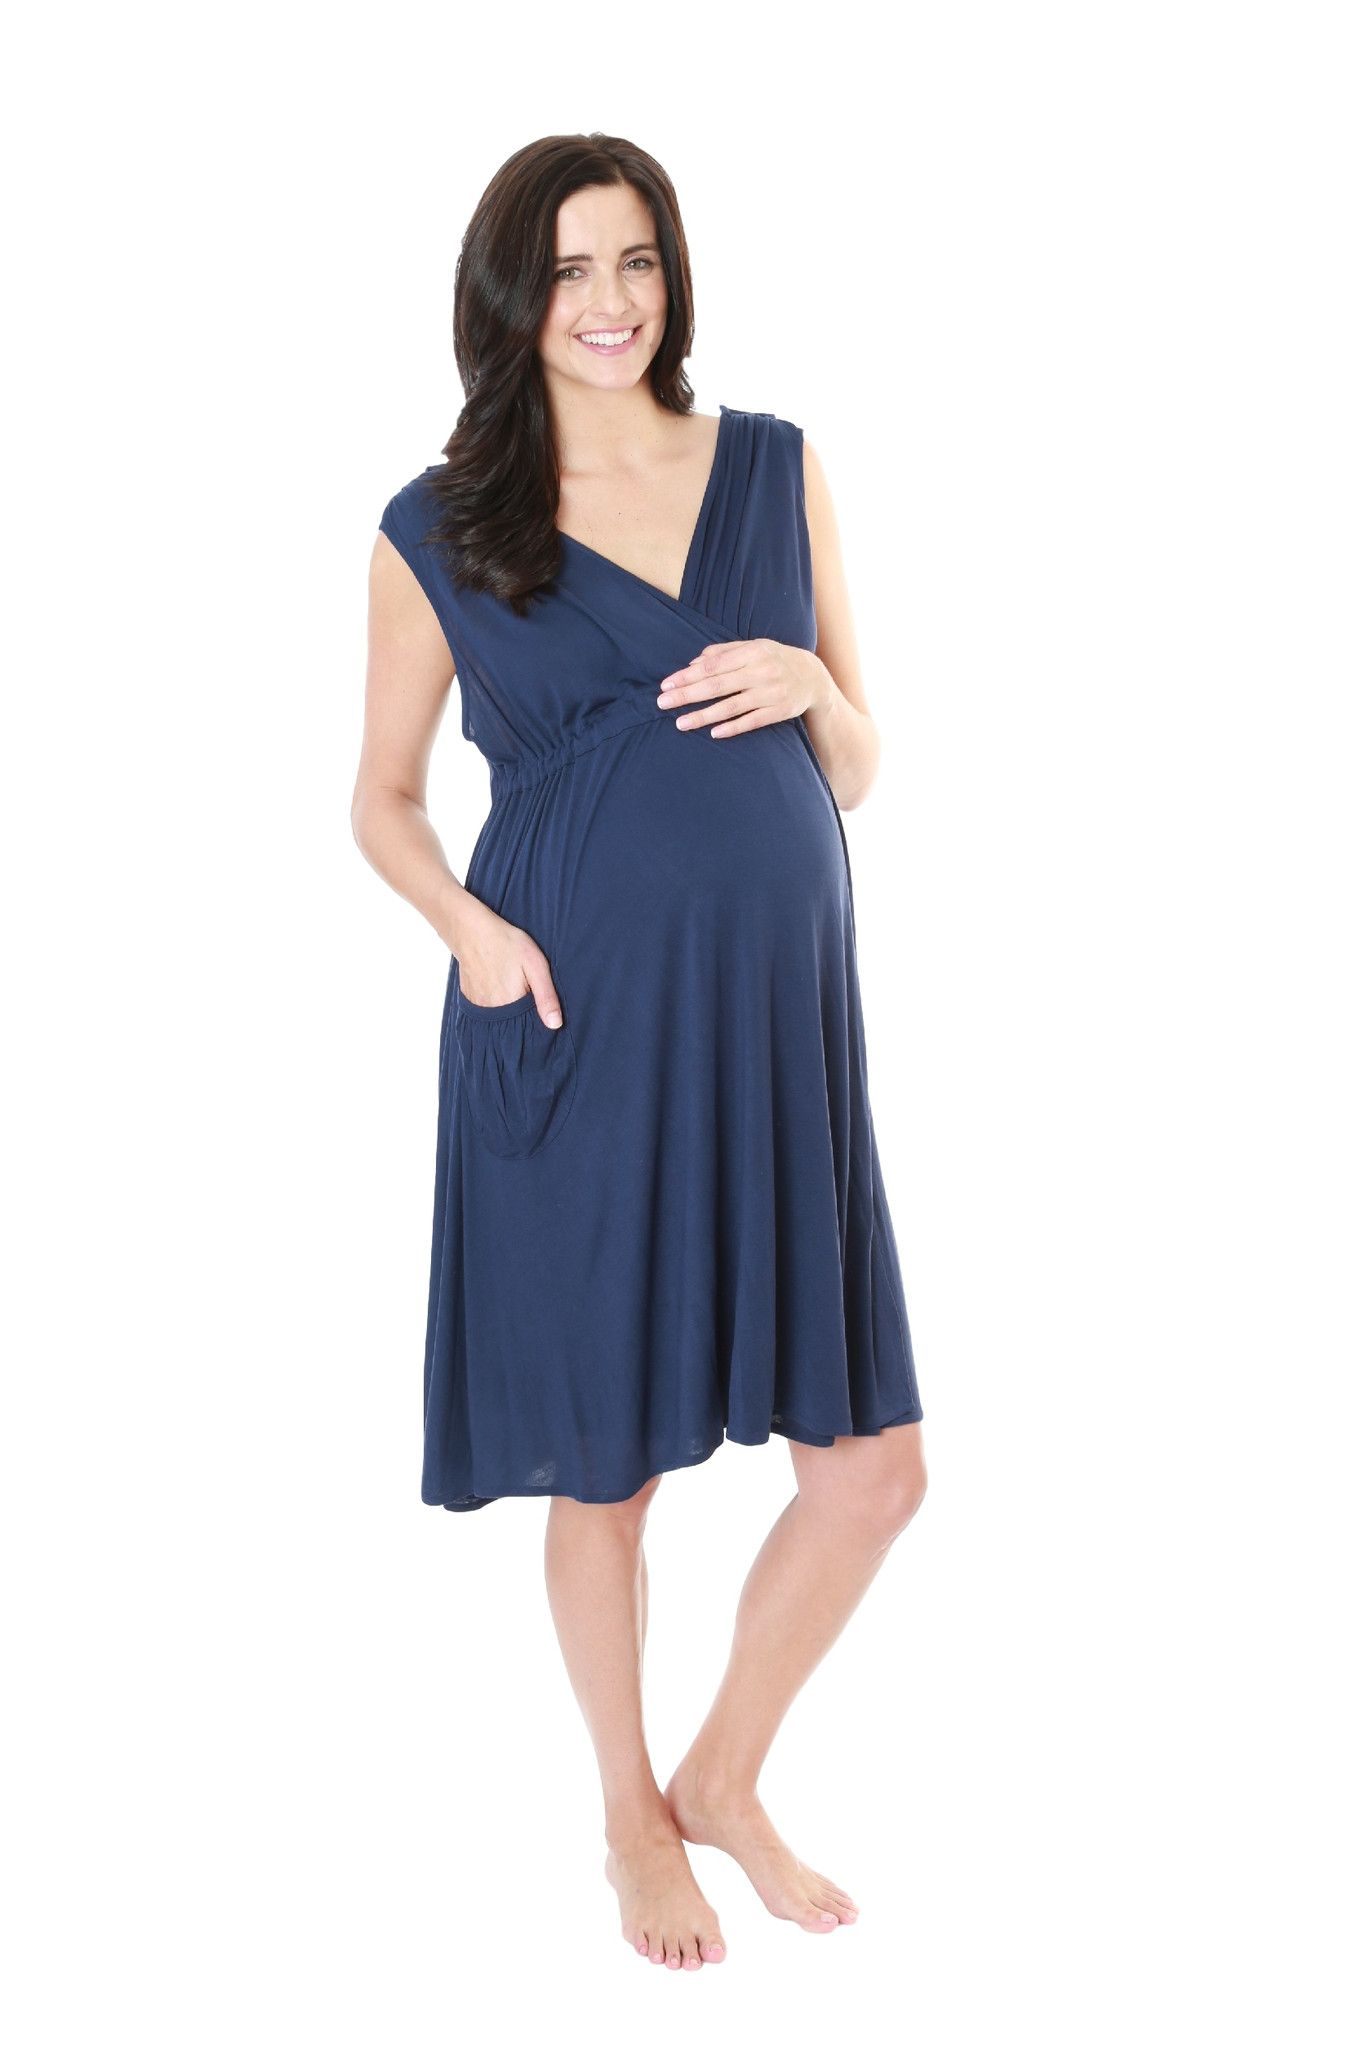 Endless Blue 3 in 1 Labor Gown | Cool Baby Gift Ideas | Pinterest ...